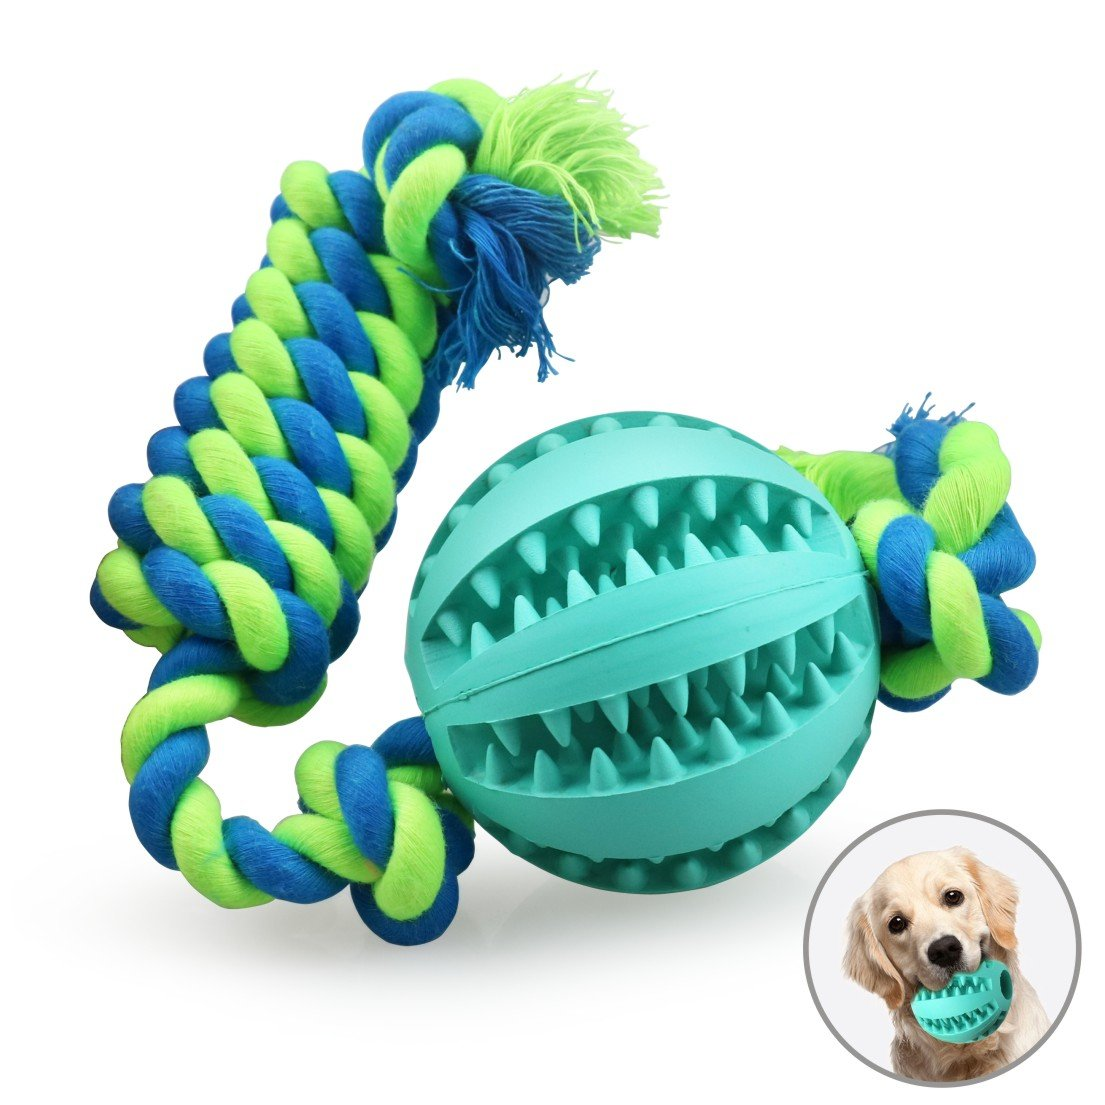 Idepet Pet Toys Bite Resistant Dog Chew Ball Safe Rubber Pull Rope Ball Dog//Cat Nontoxic Durable Interactive Pet Exercise Game Ball for Dogs//Cats//Puppies Pet Tooth Cleaning//Chewing//Playing//IQ Training